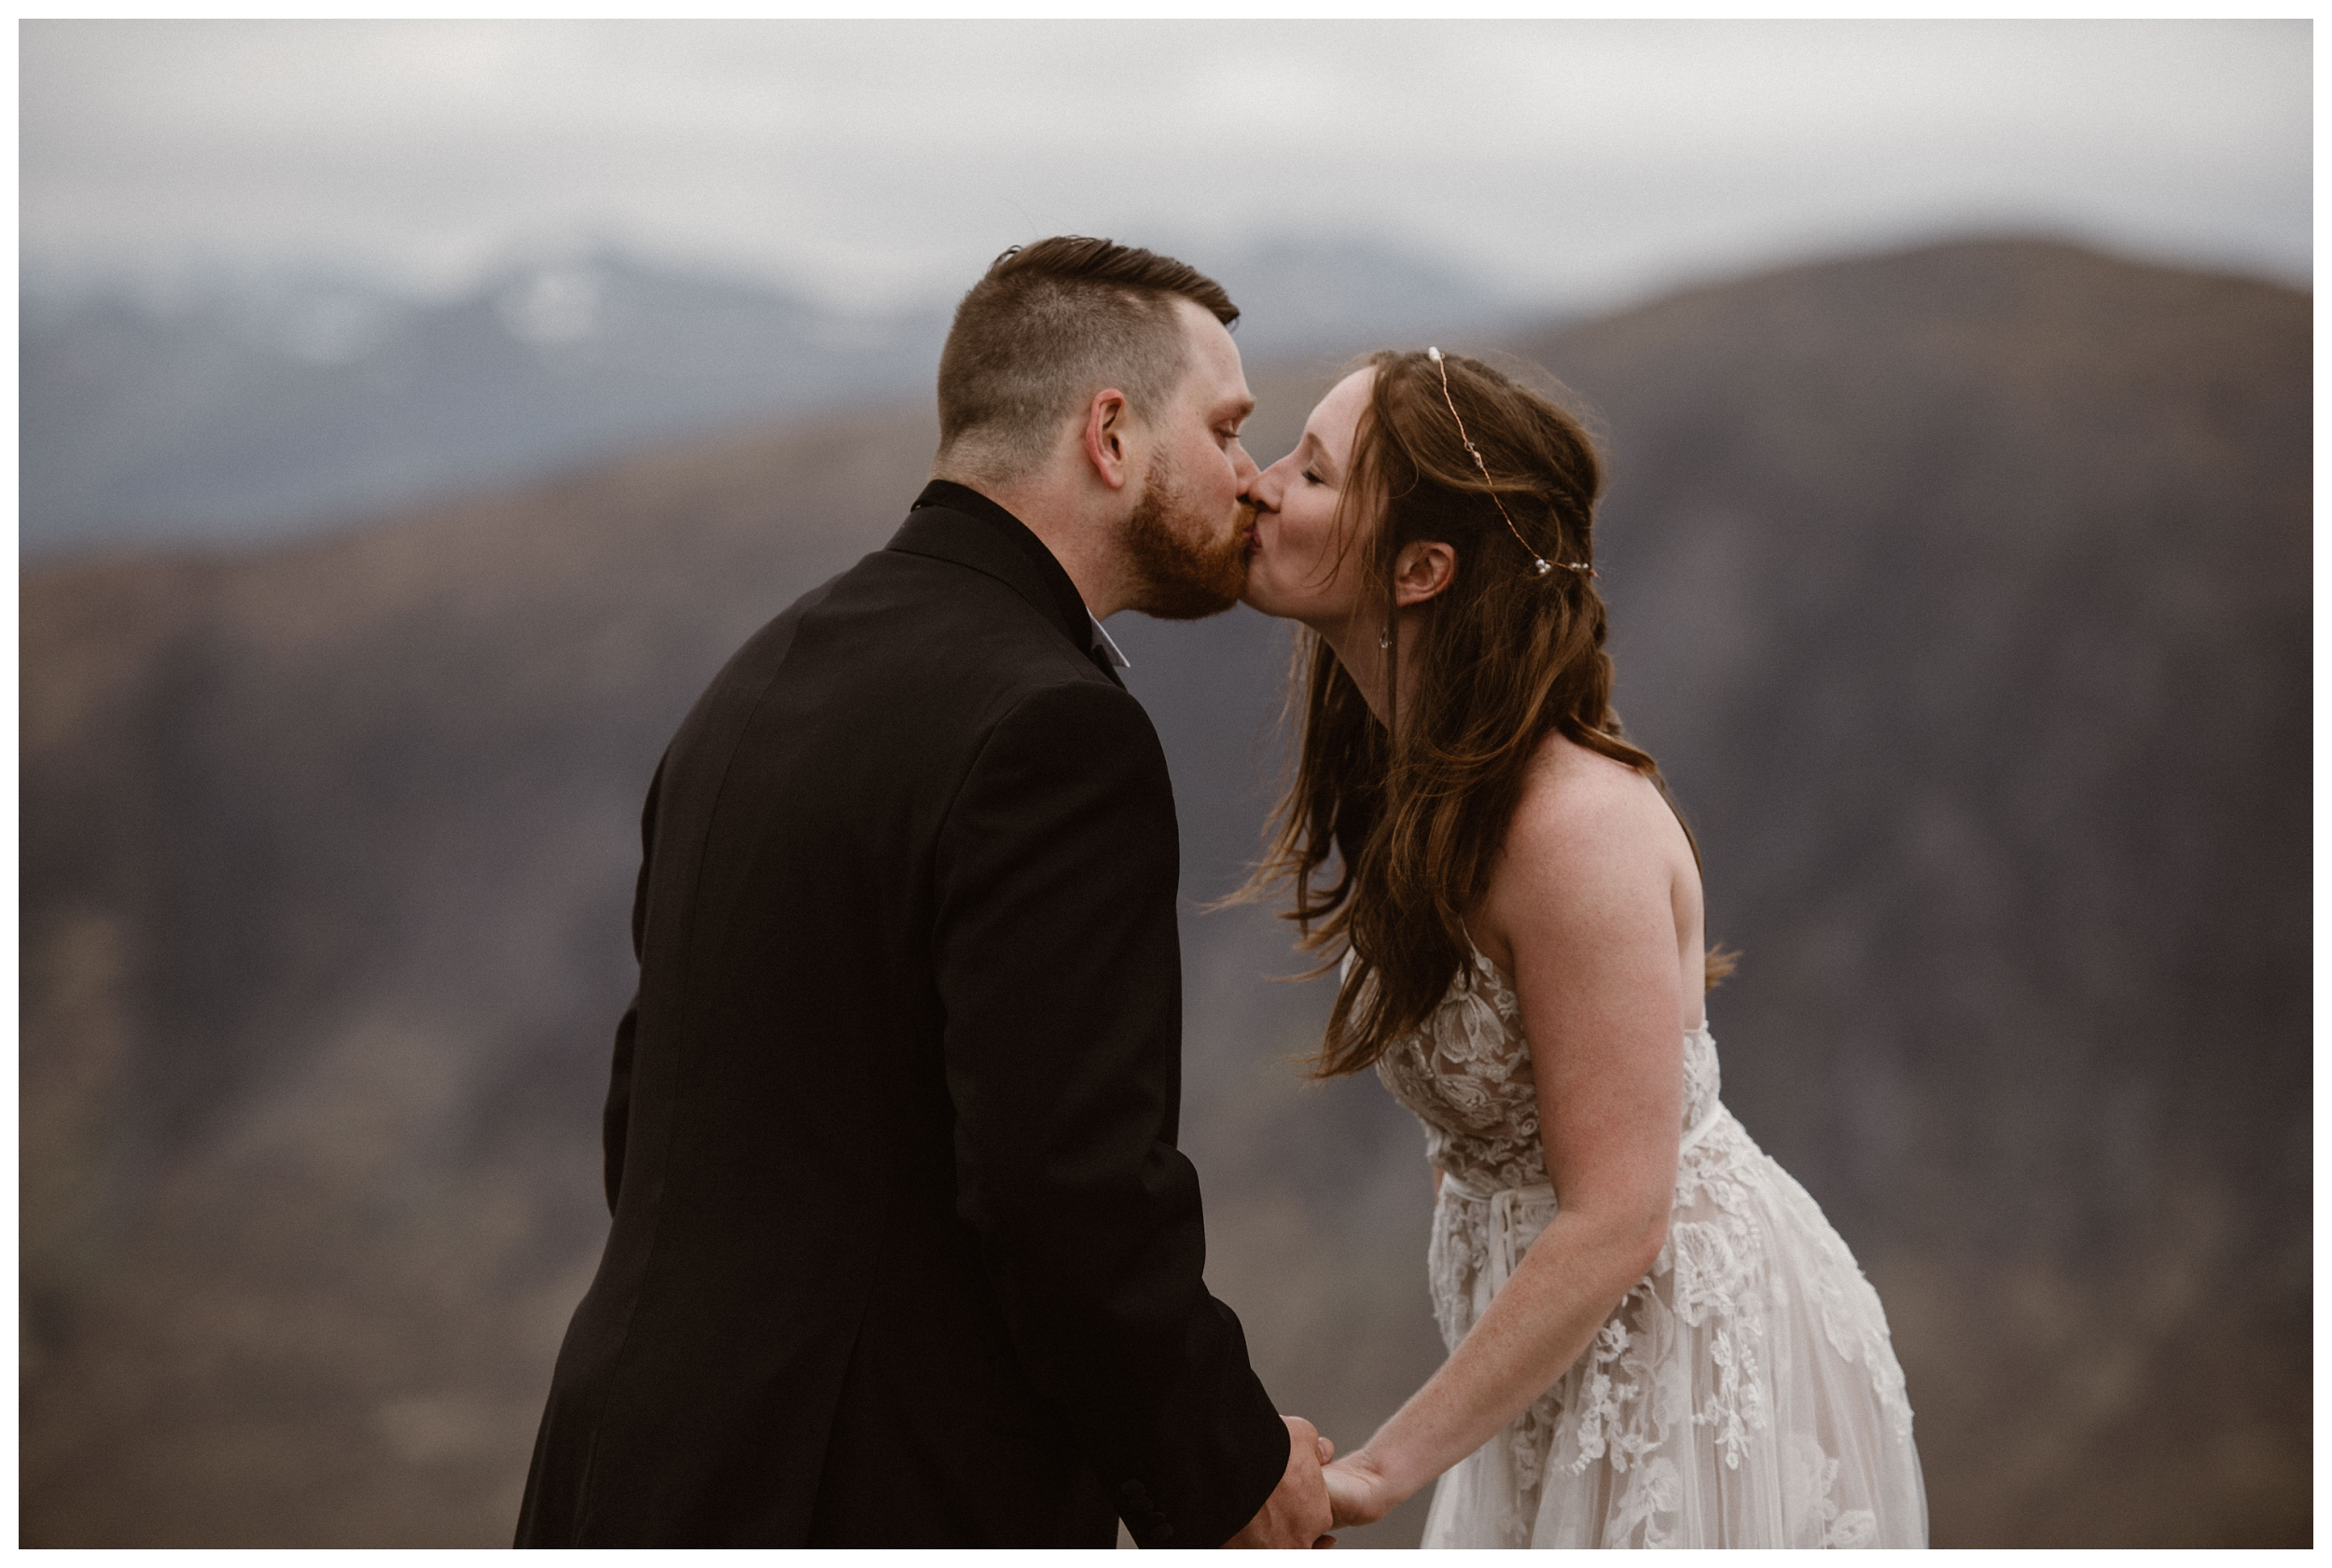 Elissa and Daniel share a kiss during their Scottish Highlands elopement ceremony. When you self solemnize for your wedding ceremony, you don't need to follow traditional marriage ceremony rules. Photo by Maddie Mae, Adventure Instead.